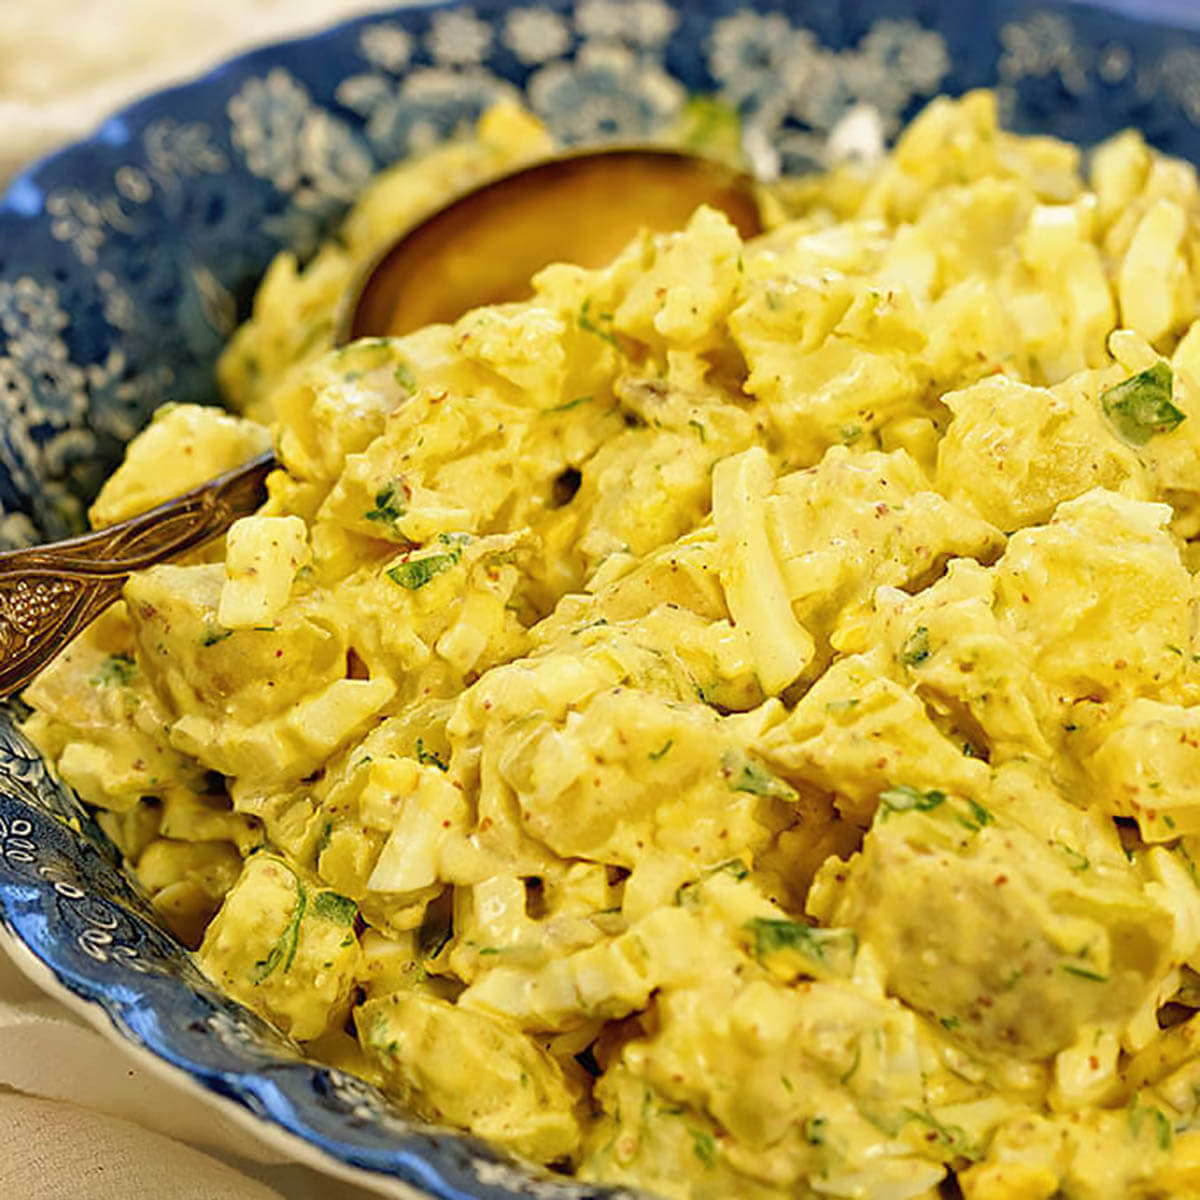 Deviled Egg Potato Salad in blue bowl with serving spoon.